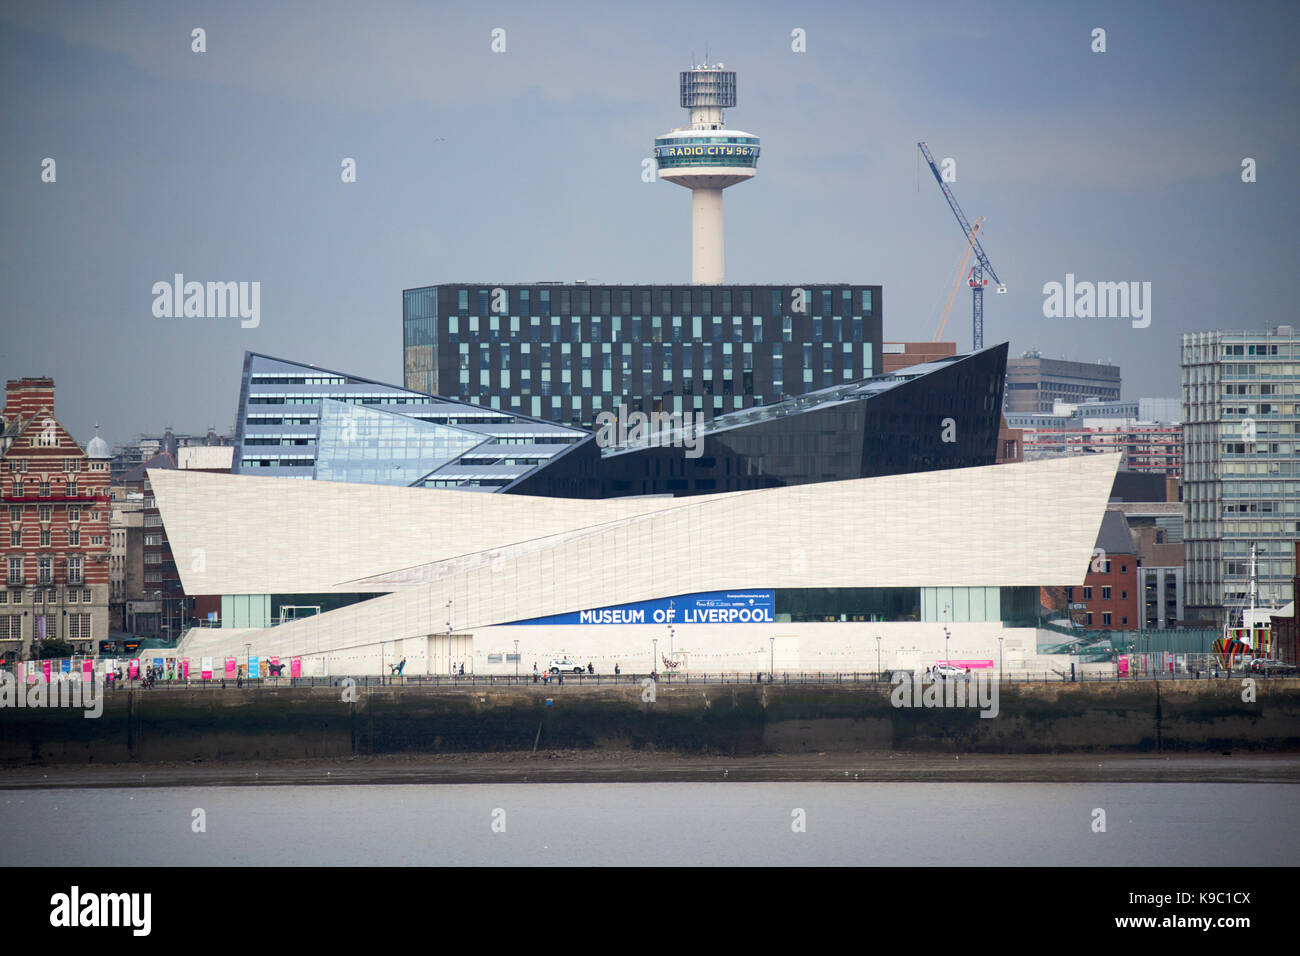 museum of liverpool on river mersey waterfront and liverpool skyline - Stock Image